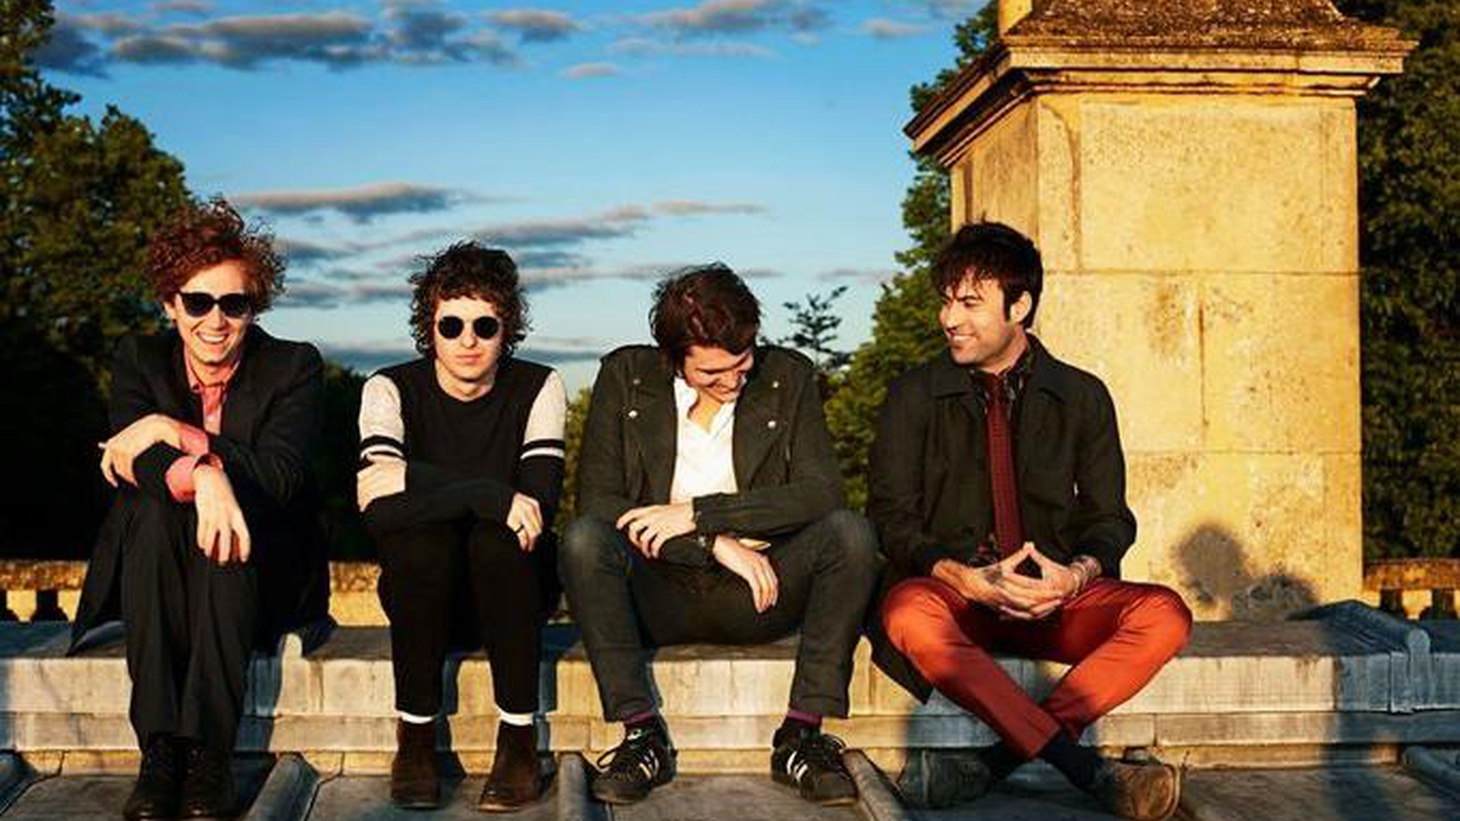 UK pop band The Kooks have an irresistible charm. They've had us hooked since their early releases and their new tunes are just as compelling...